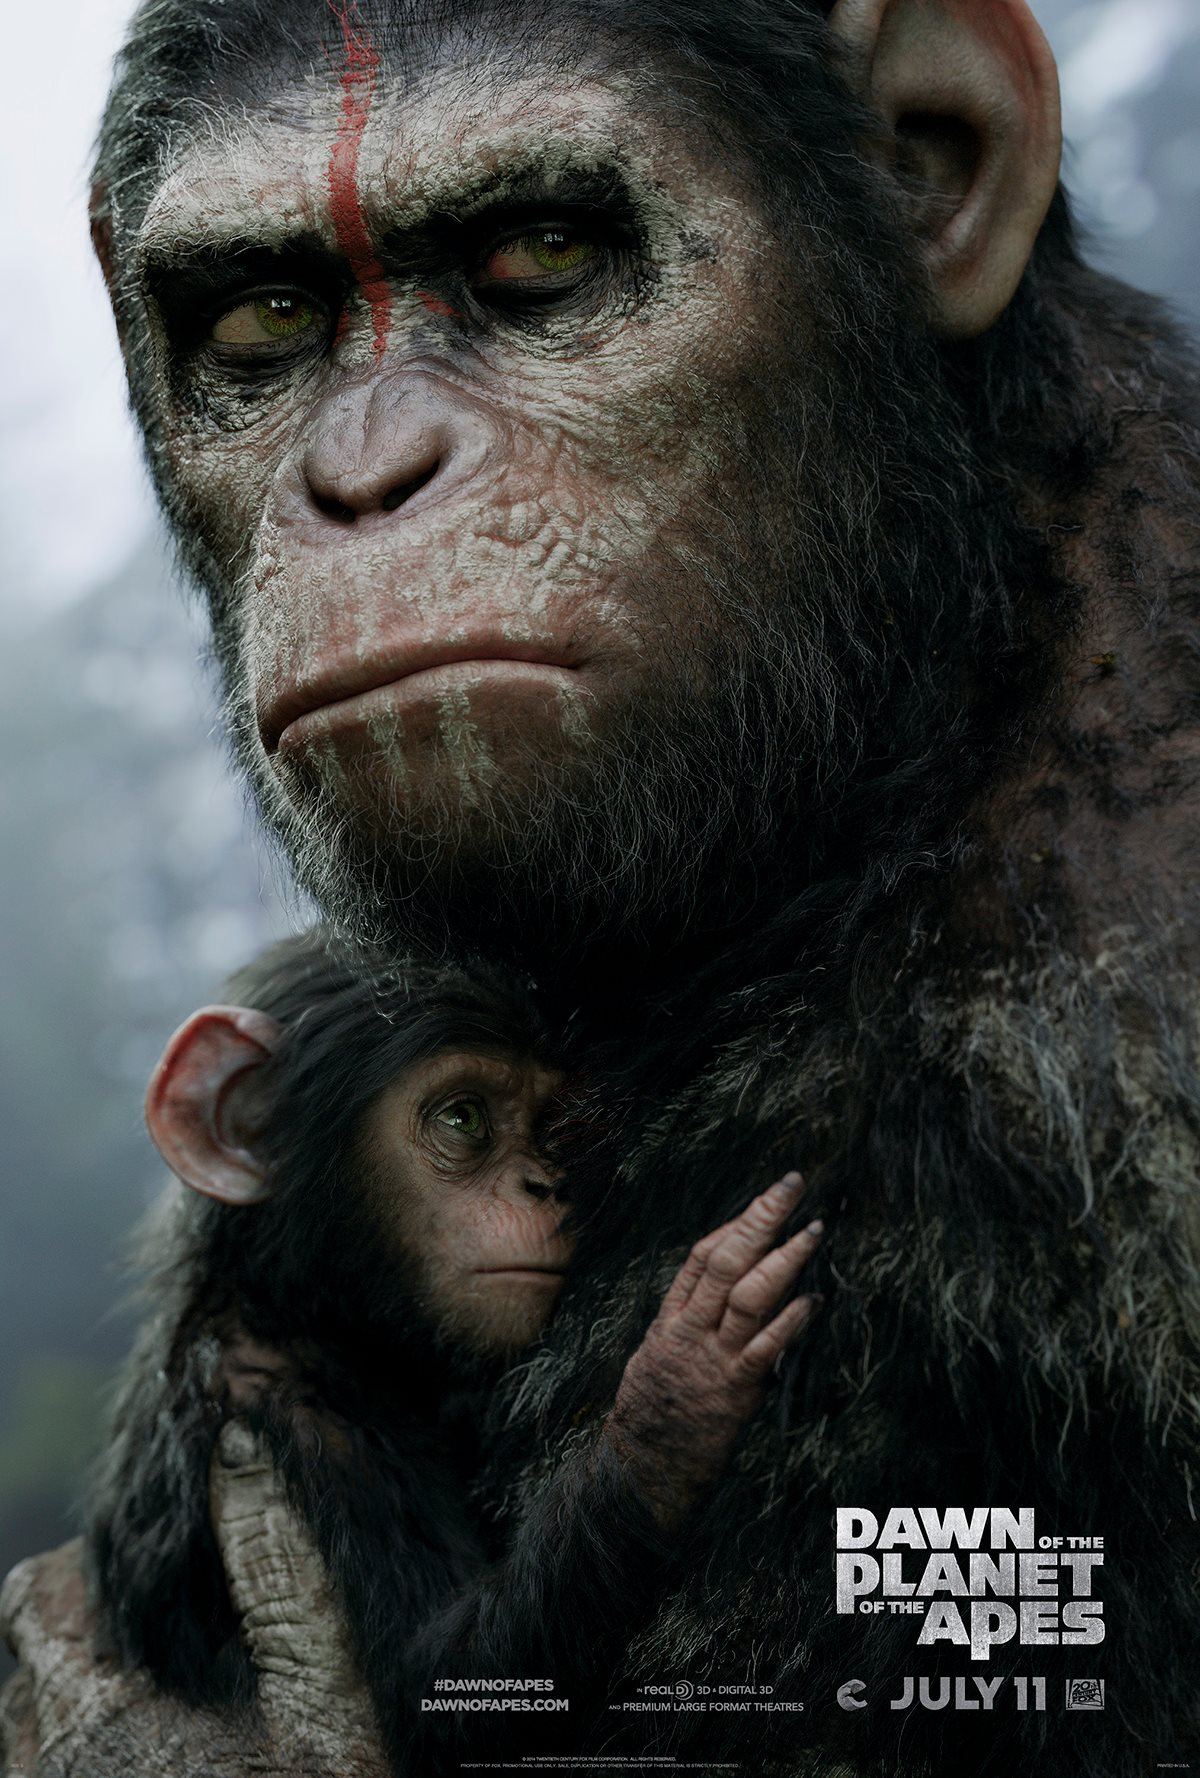 Dawn of the planets of the apes